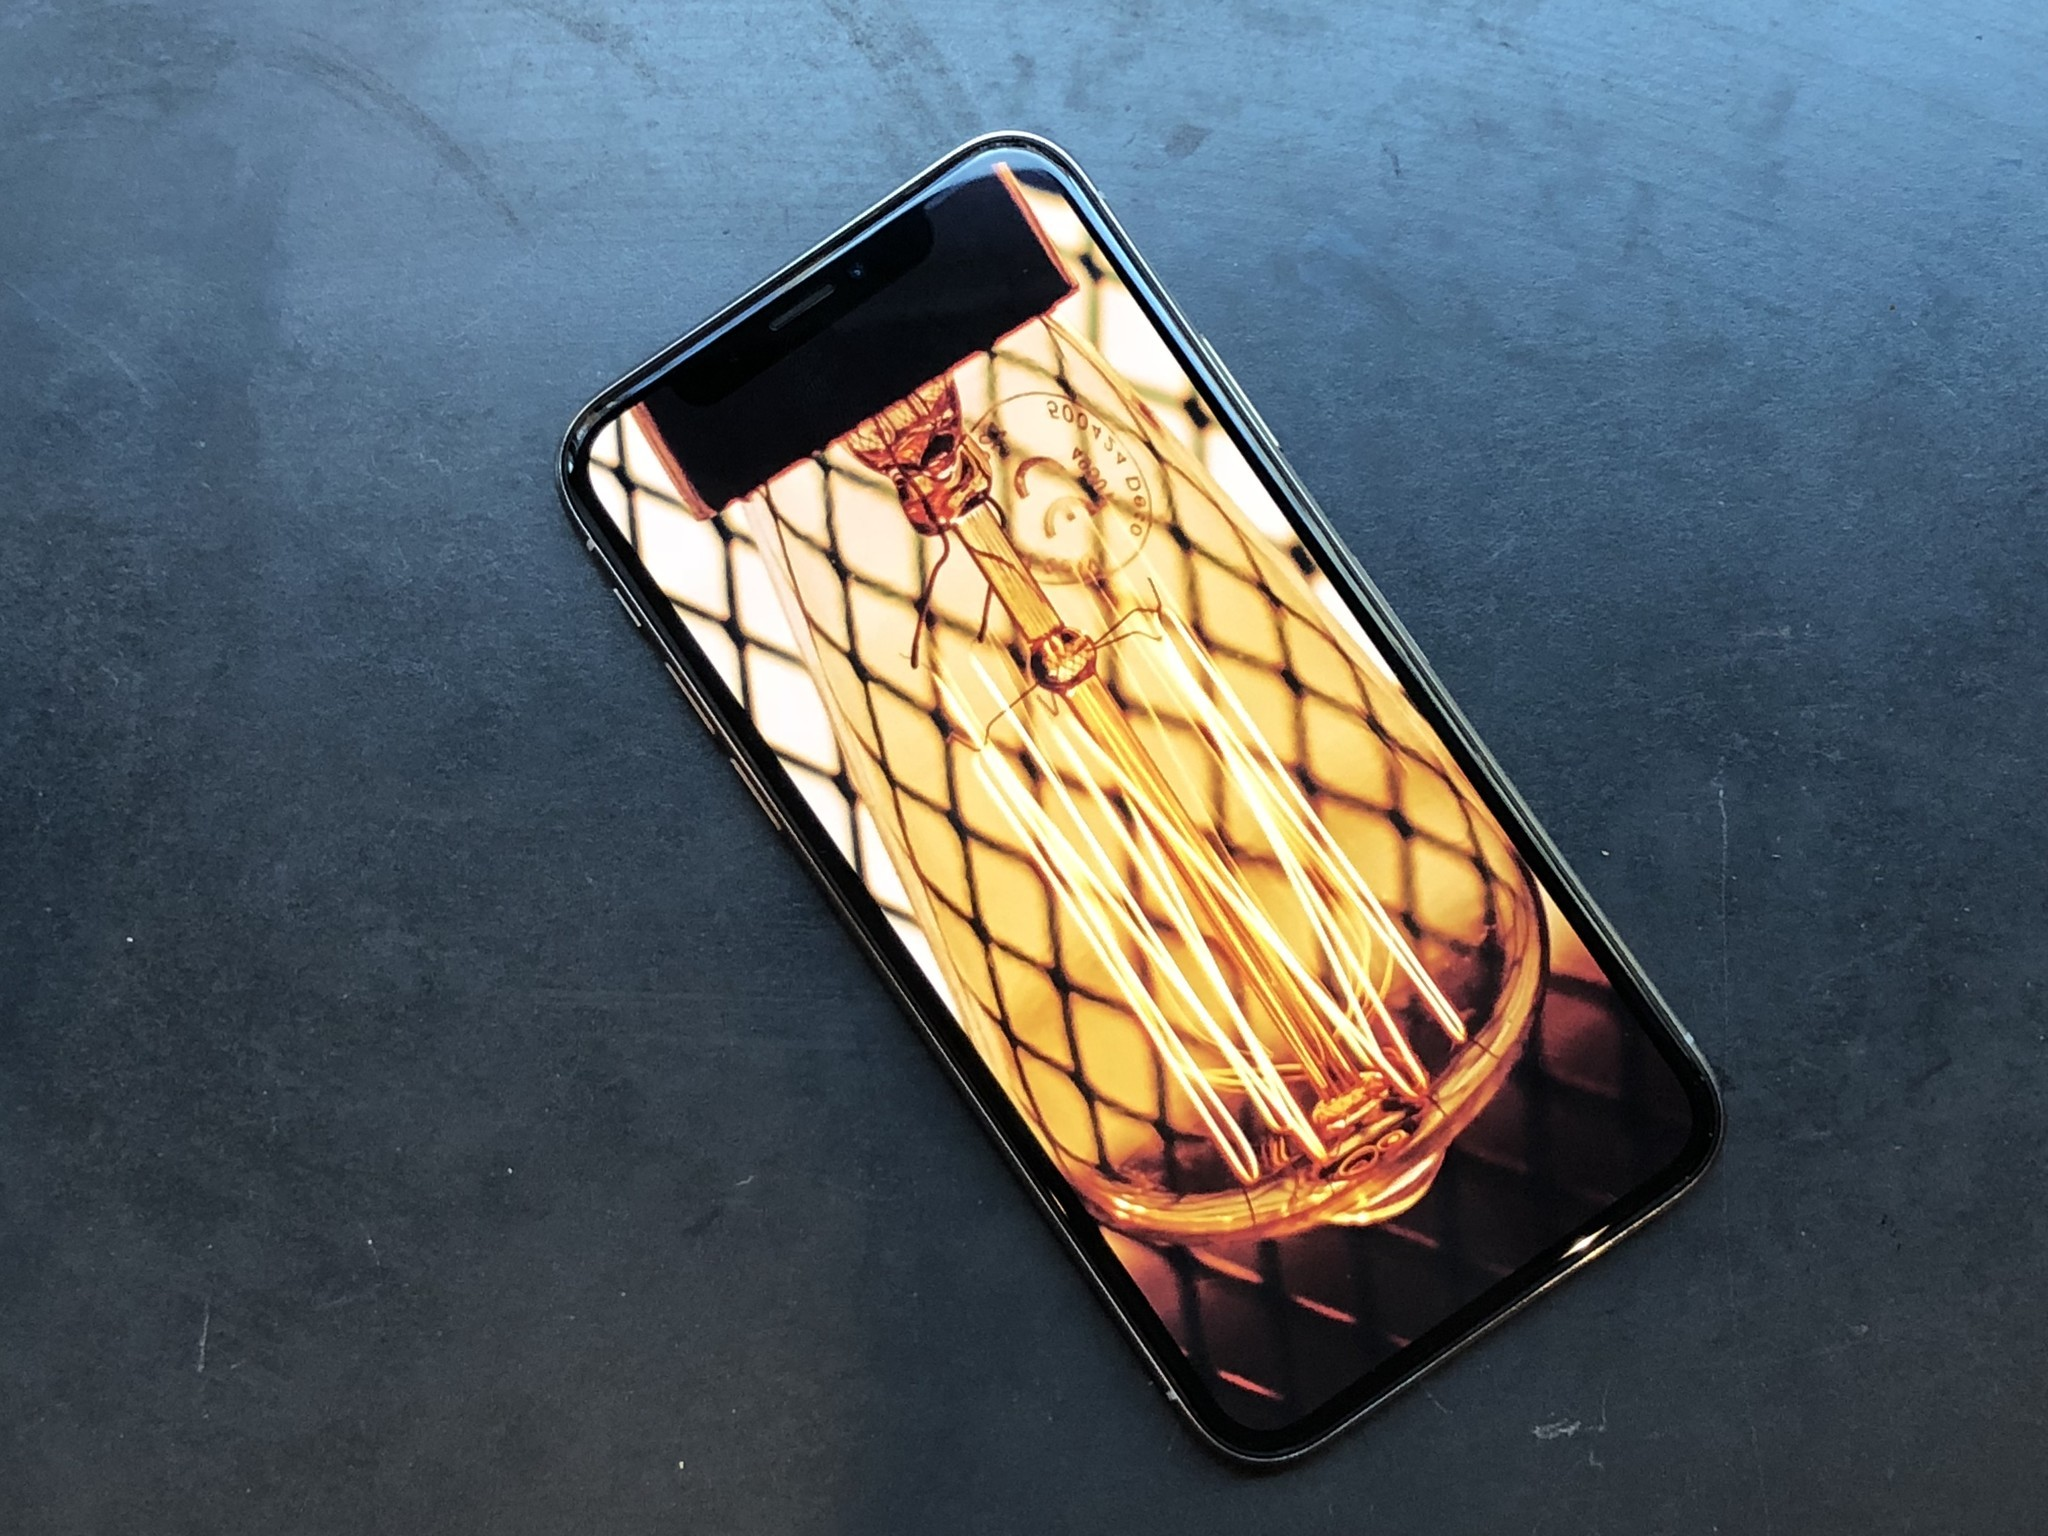 Best wallpaper to show off your iPhone X screen   iMore Best wallpaper to show off your iPhone X screen